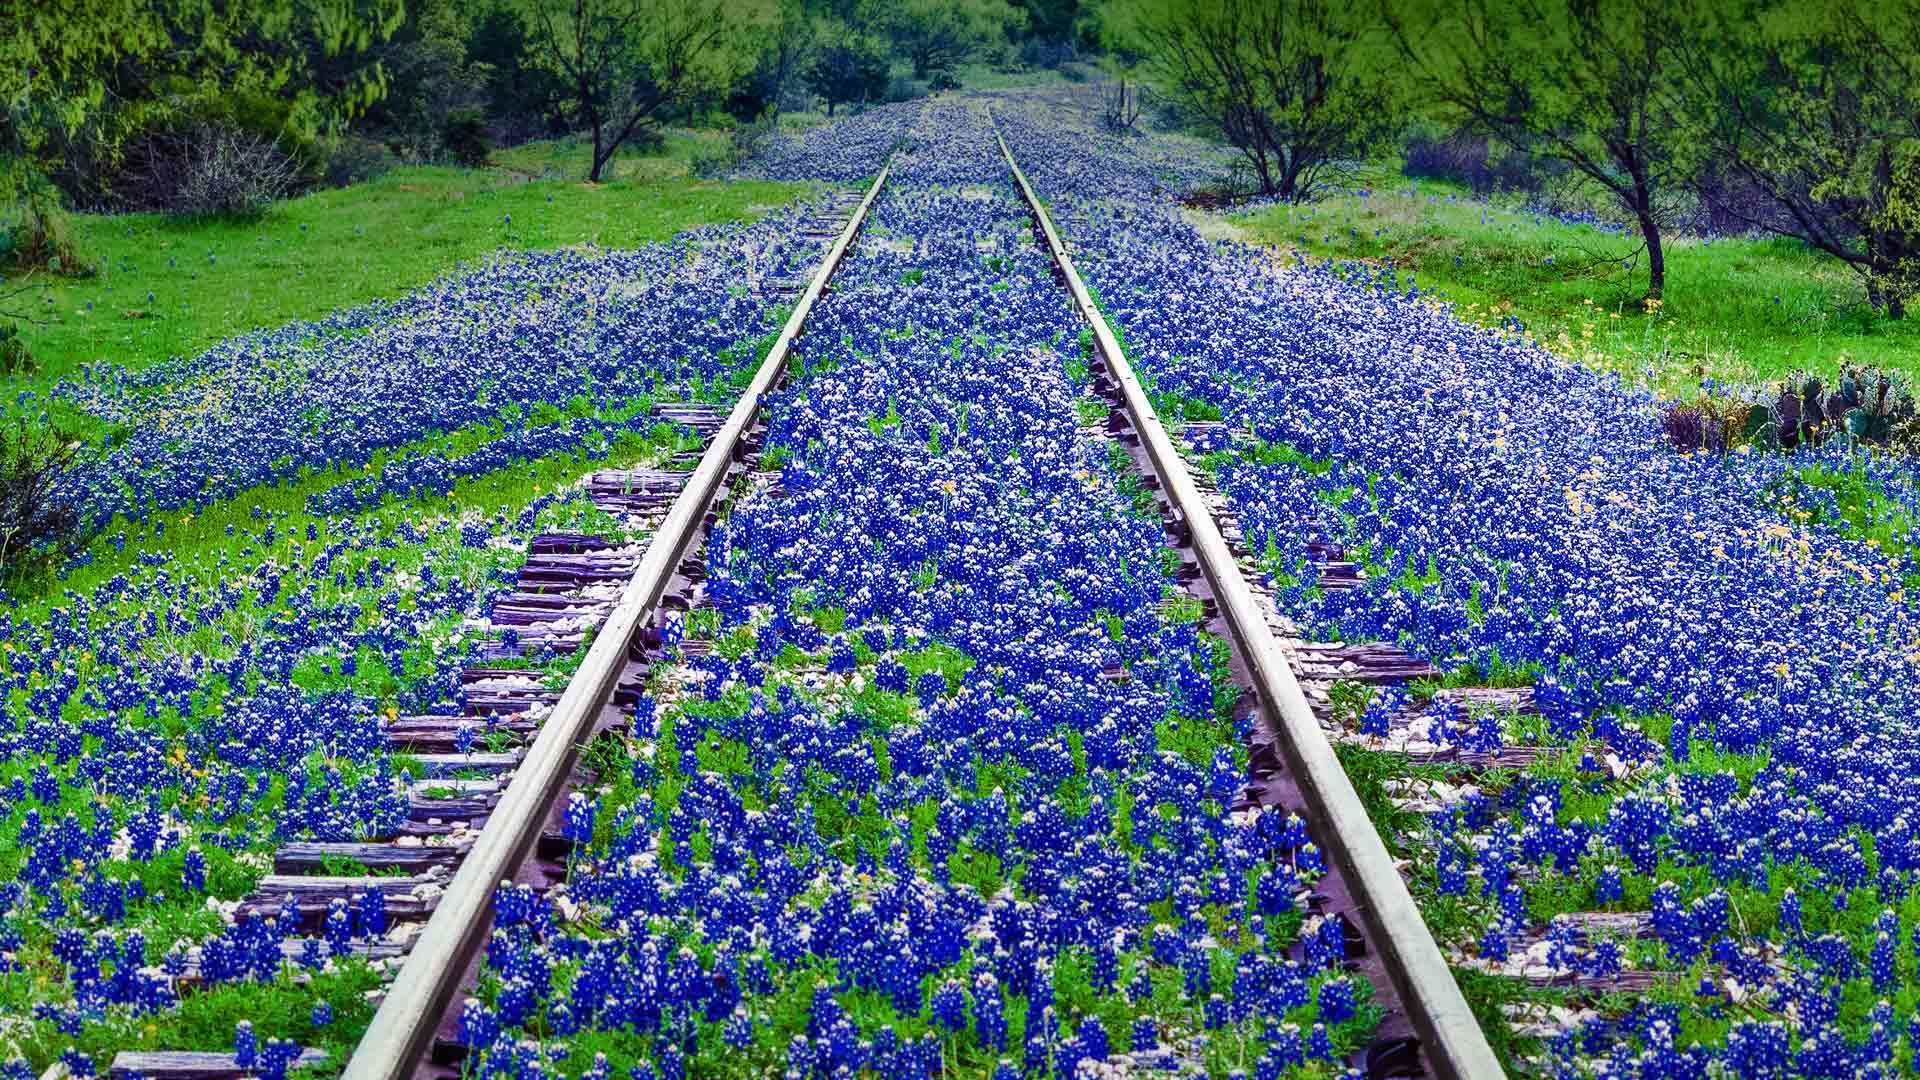 Res: 1920x1080, Texas Bluebonnets Wallpapers 24 - 1920 X 1080